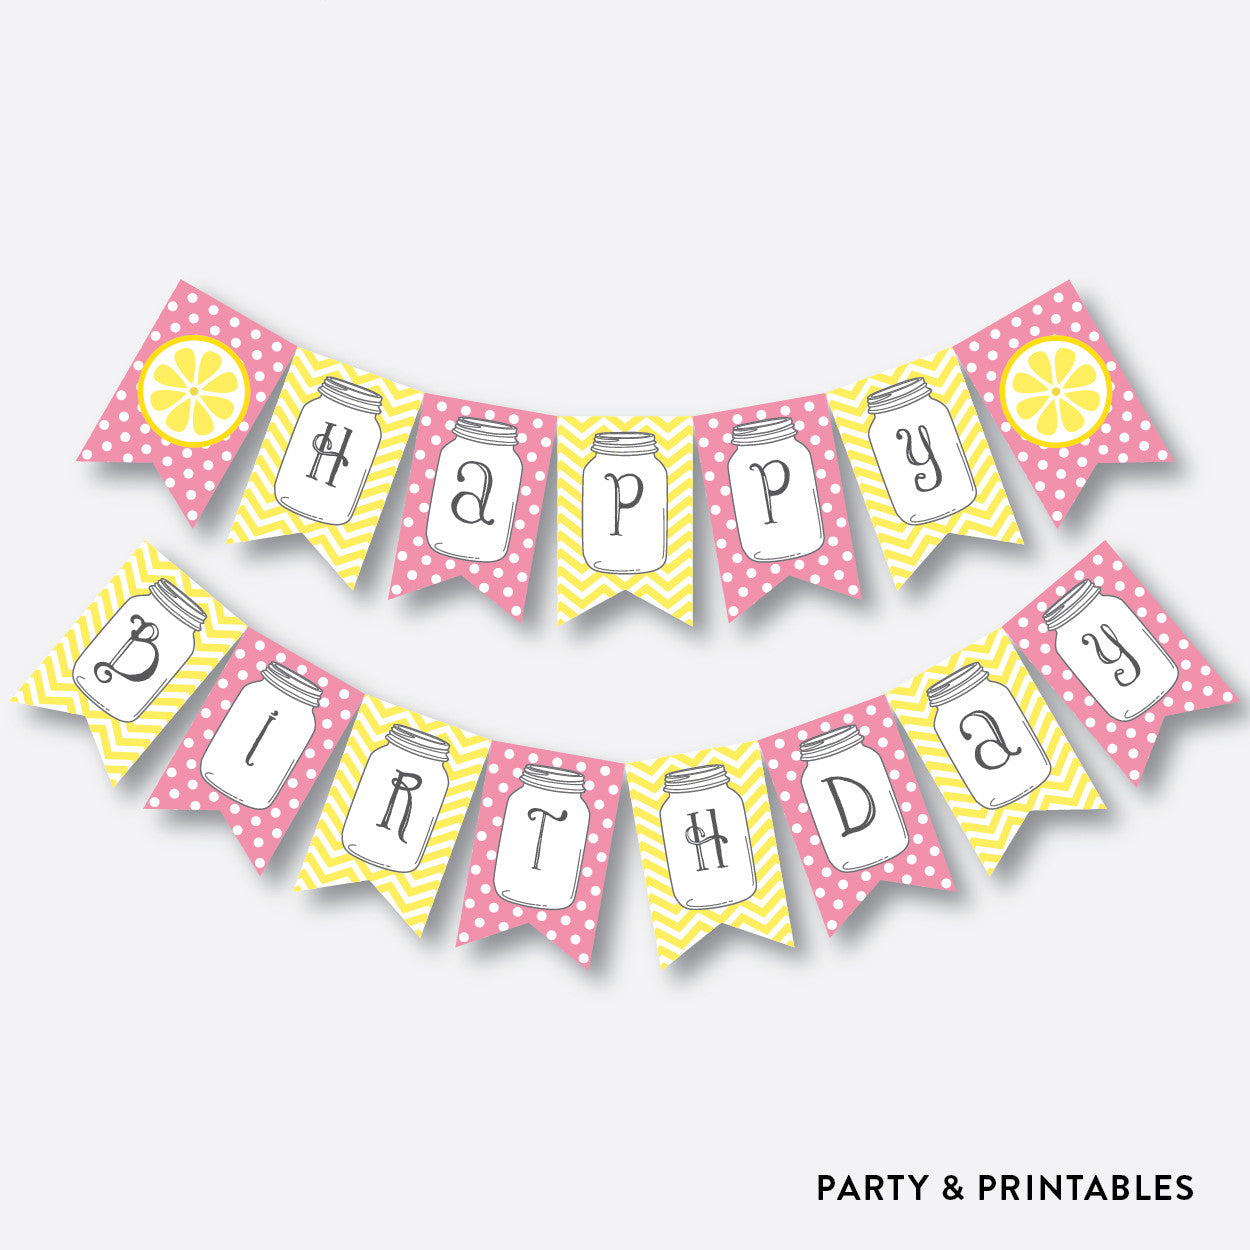 Pink Lemonade Stand Party Banner / Happy Birthday Banner / Non-Personalized / Instant Download (SKB.37), party printables - Party and Printables